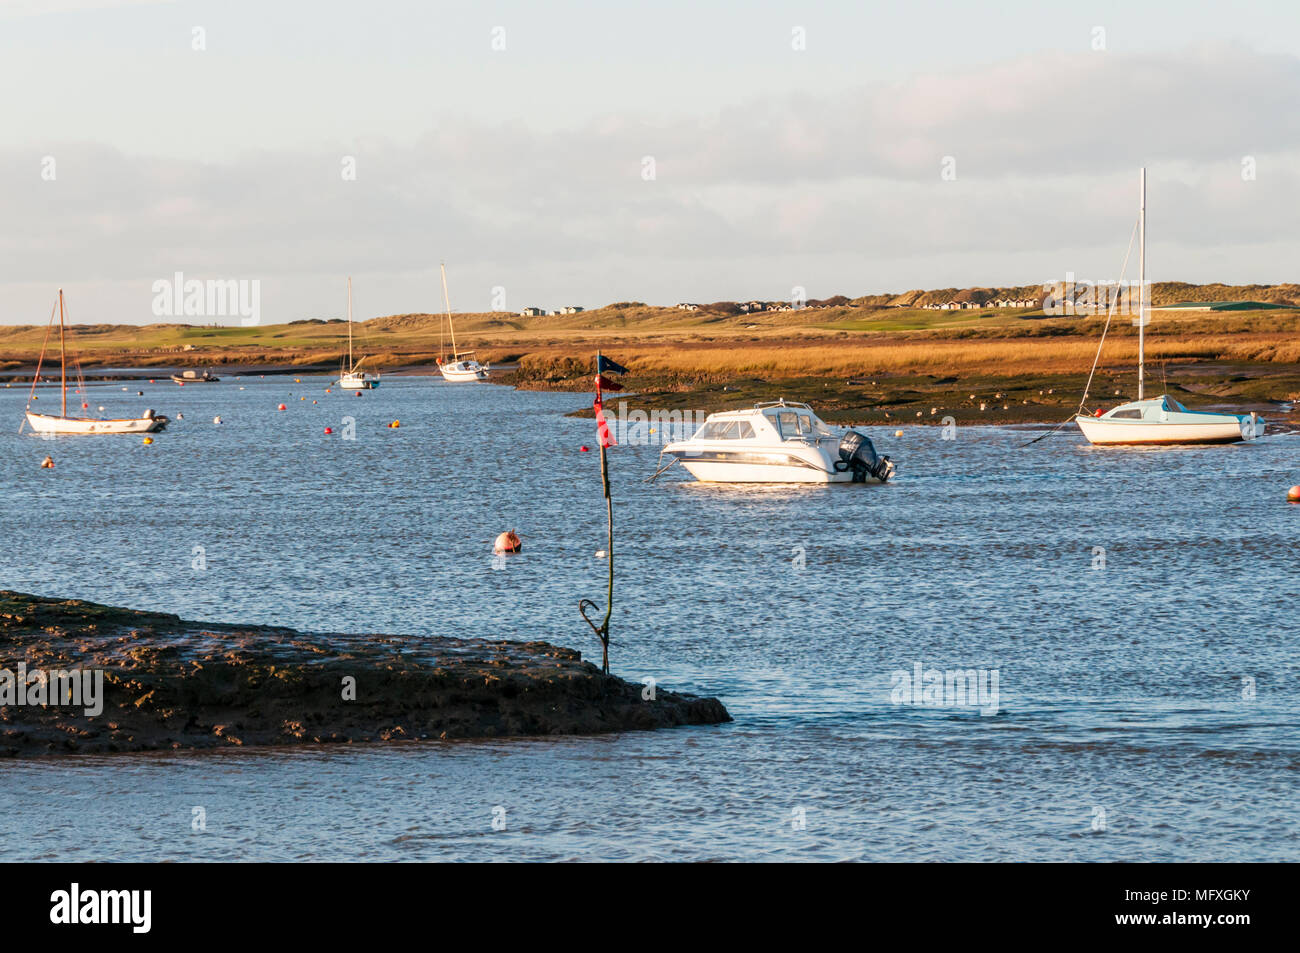 View across Mow Creek to saltmarshes from Brancaster Staithe on the North Norfolk coast. Stock Photo